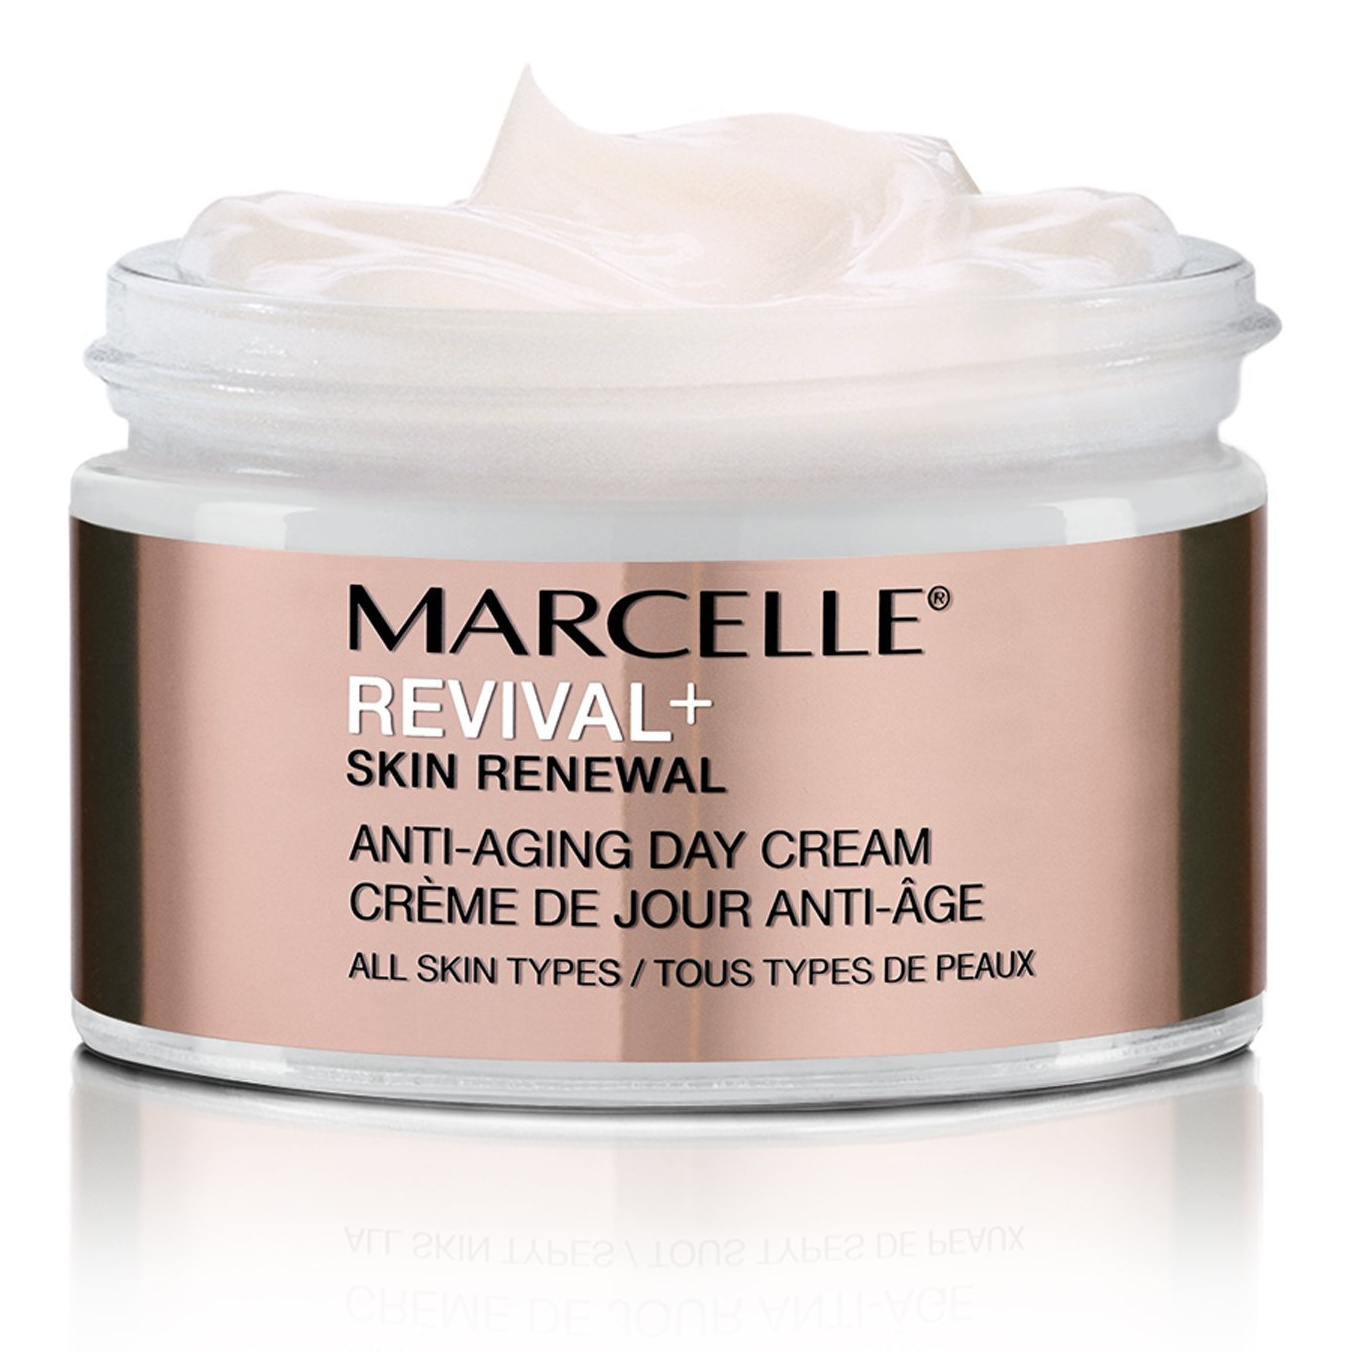 Marcelle Revival+ Skin Renewal Anti-Aging Day Cream